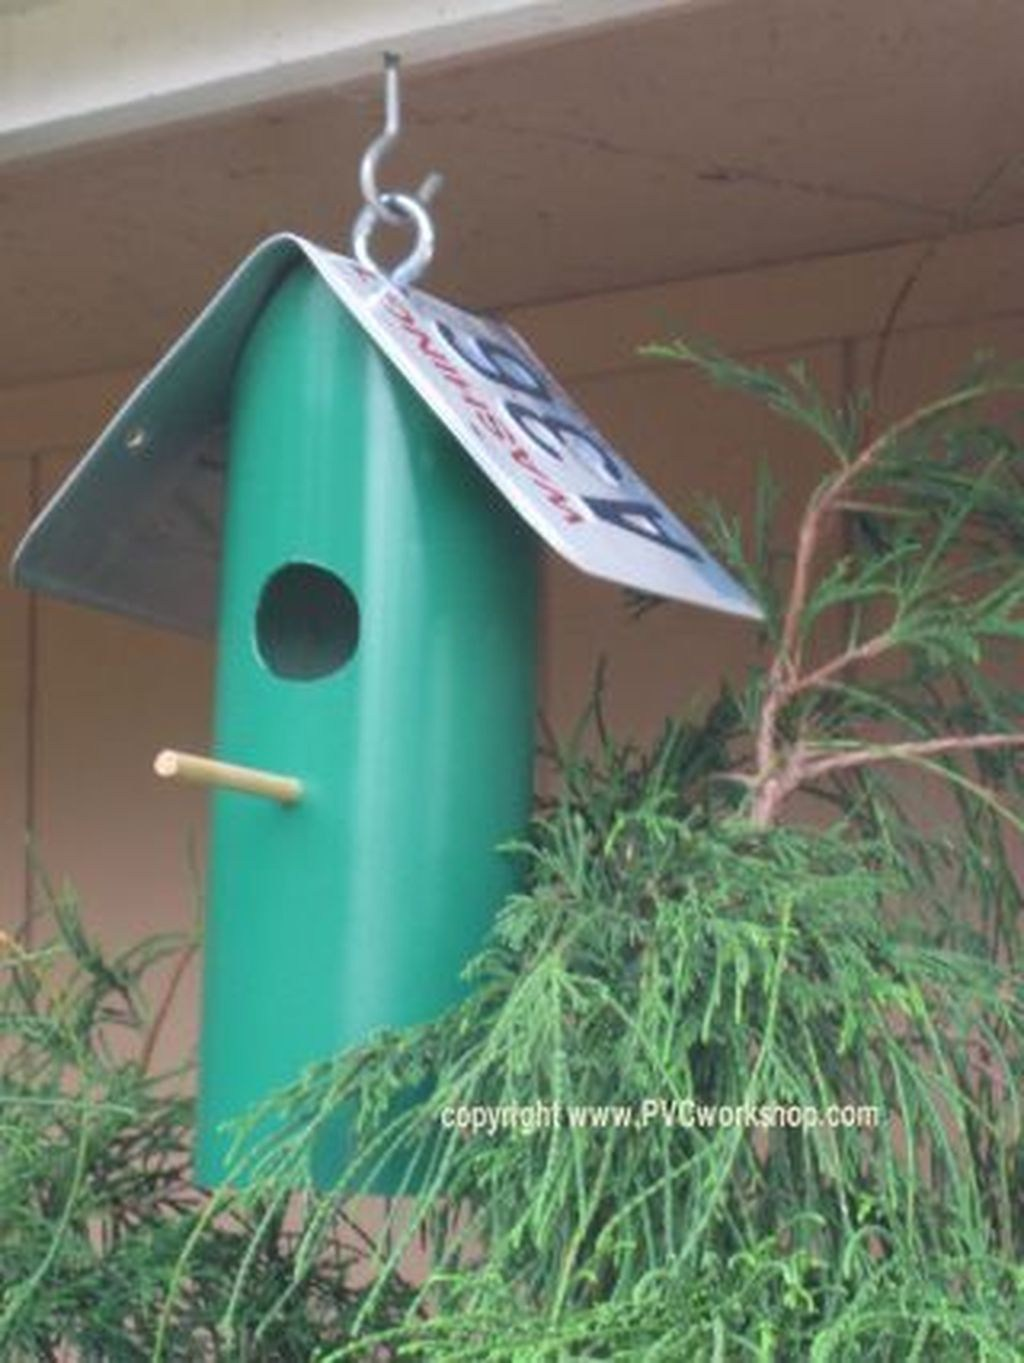 50 Amazing Bird House Ideas For Your Backyard Space - TREND4HOMY